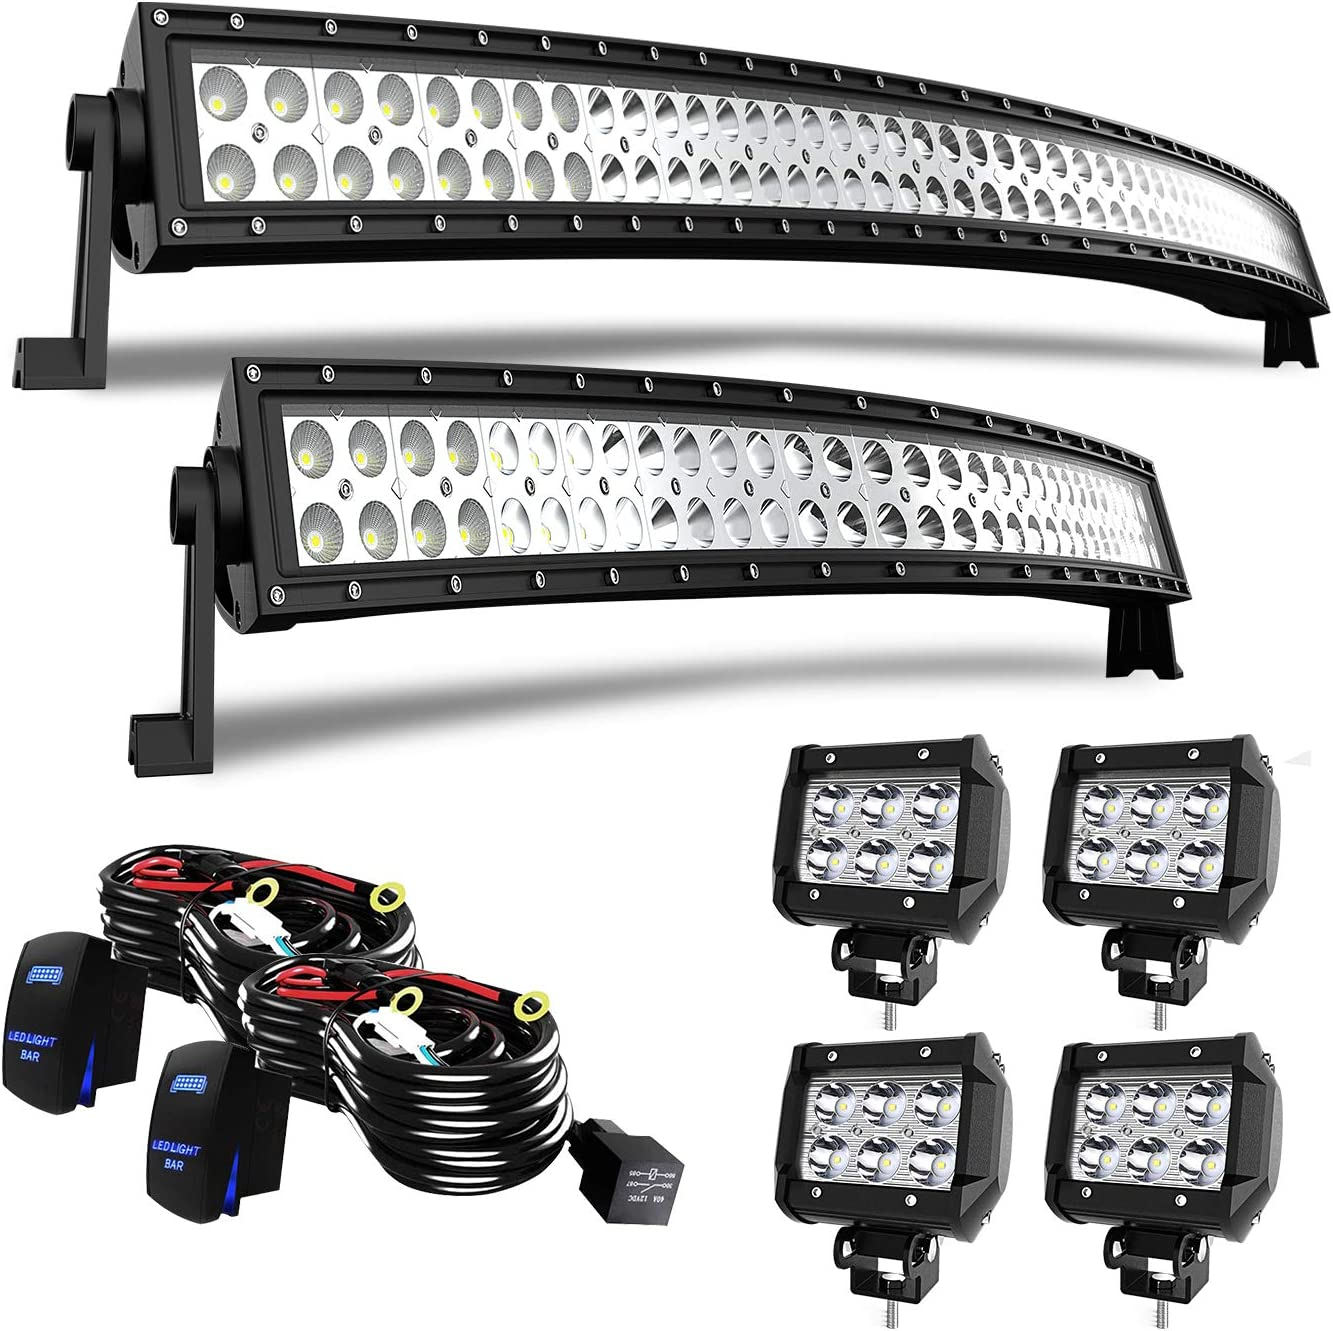 52Inch LED Light Bar Combo 4x Rock Lights Multi-Color Offroad SUV 50 3in Pods